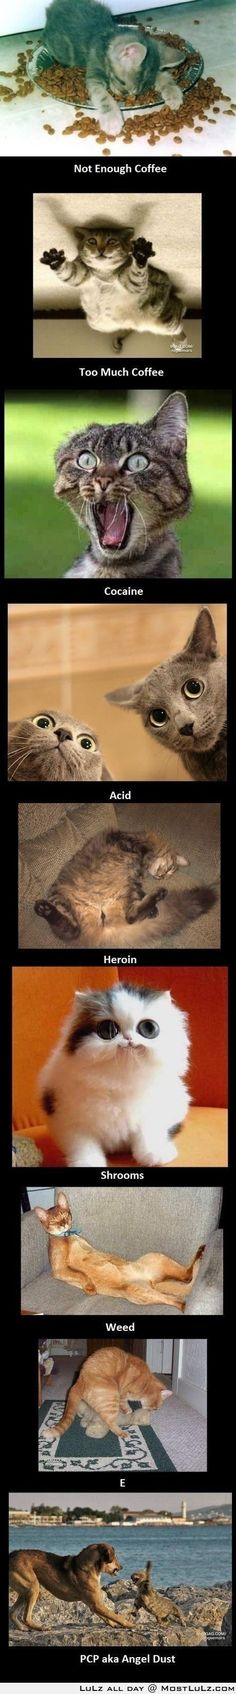 Drugs & Cats